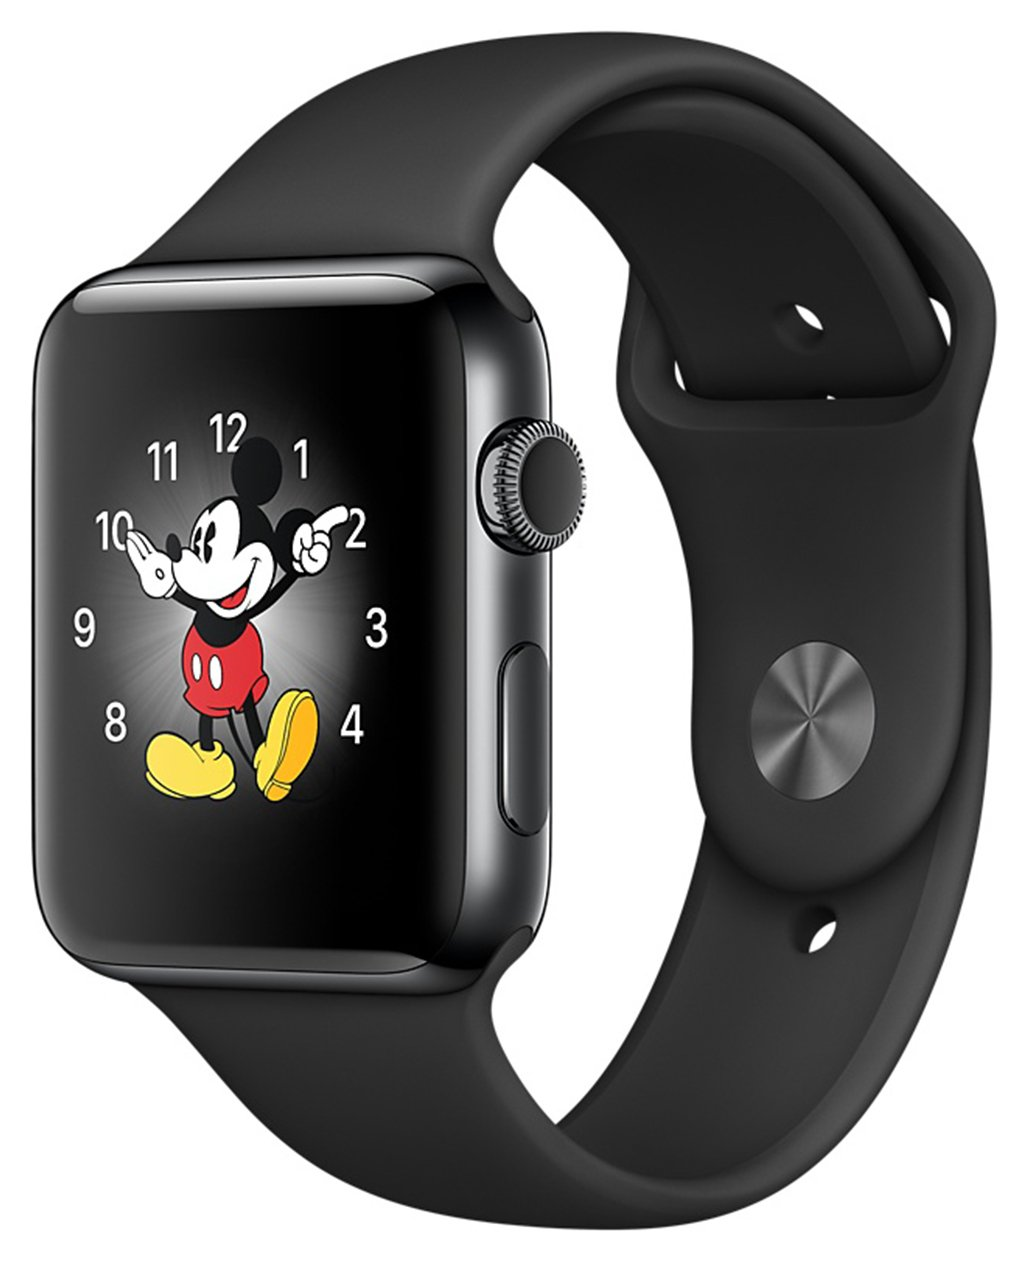 Buy Brand New Apple Watch S2 38mm Space Black SSteel wSpace Black Band.